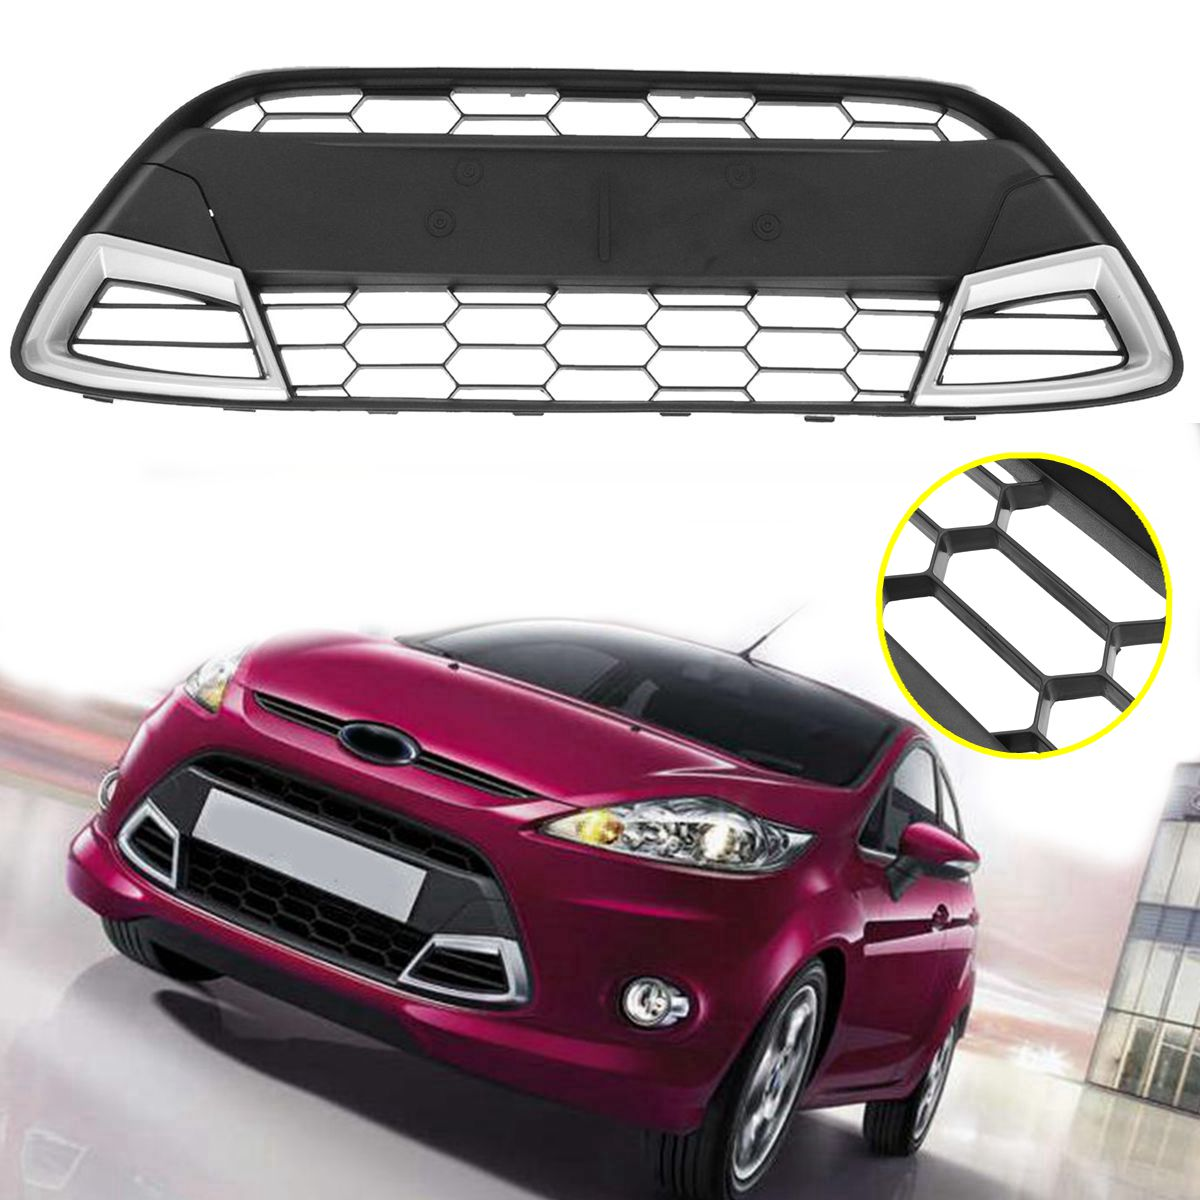 102cm Car Front Center Sport Racing Grill Bumper Grille Panel Trim for FORD FIESTA 2008-2011 MK7102cm Car Front Center Sport Racing Grill Bumper Grille Panel Trim for FORD FIESTA 2008-2011 MK7